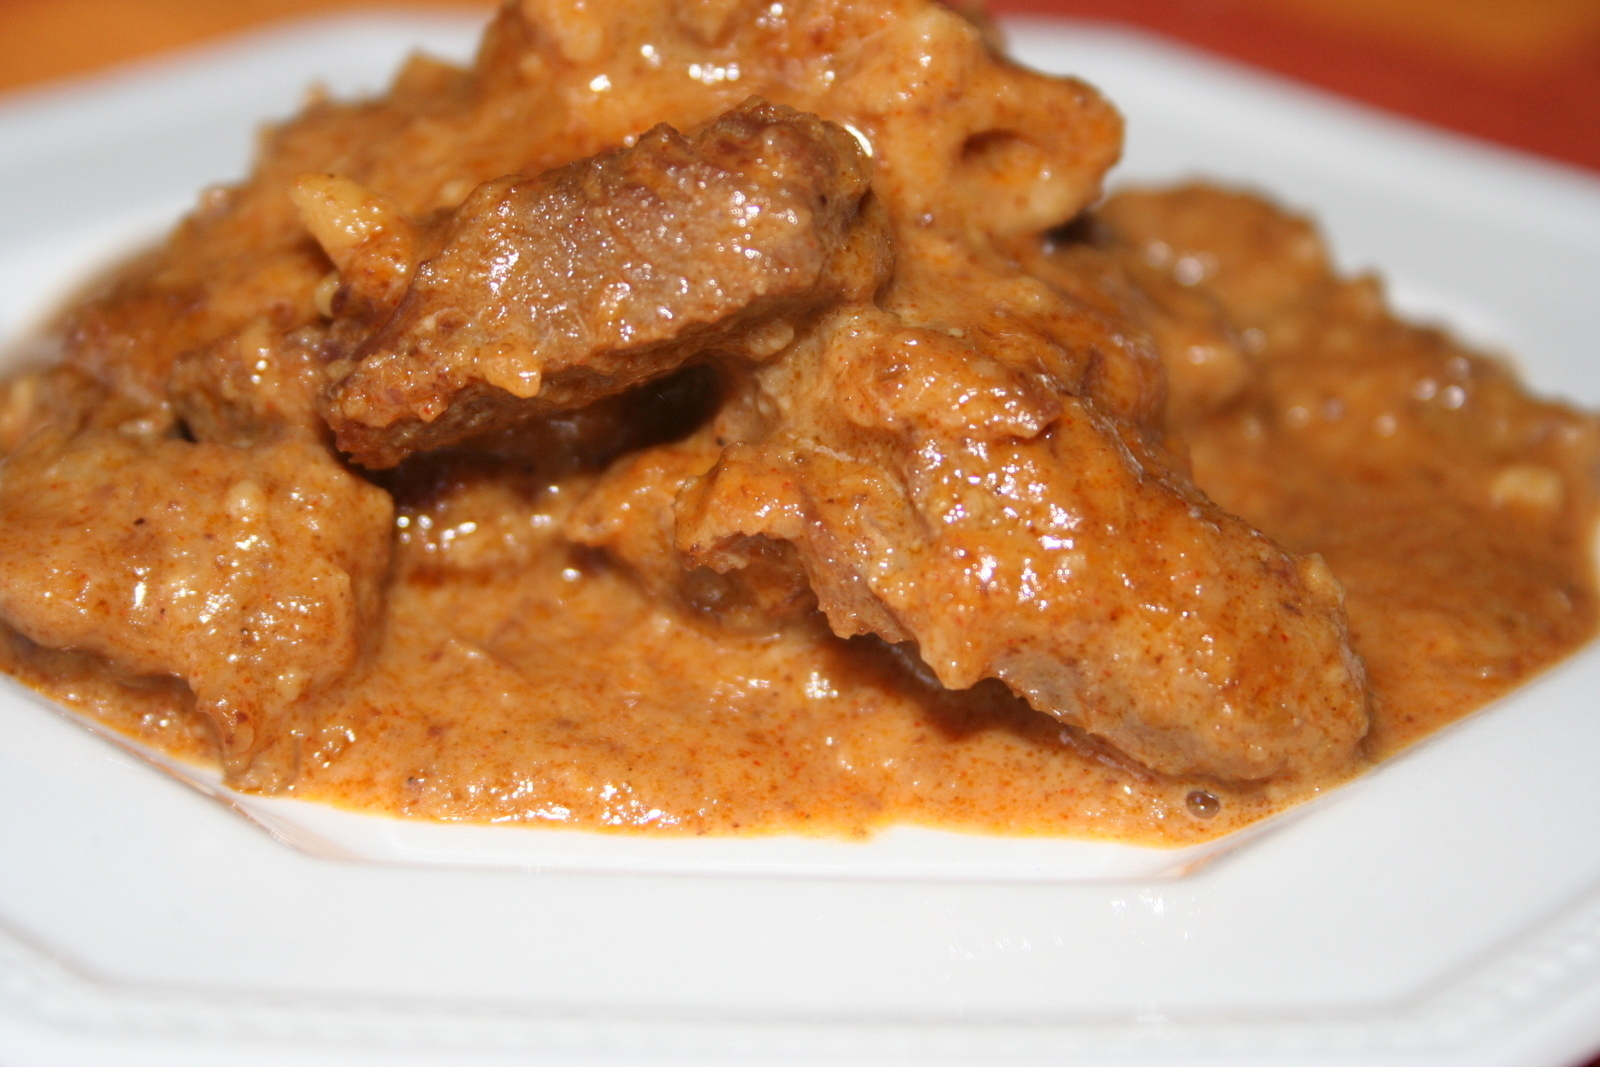 Mutton qorma (Korma, Pakistani recipe)